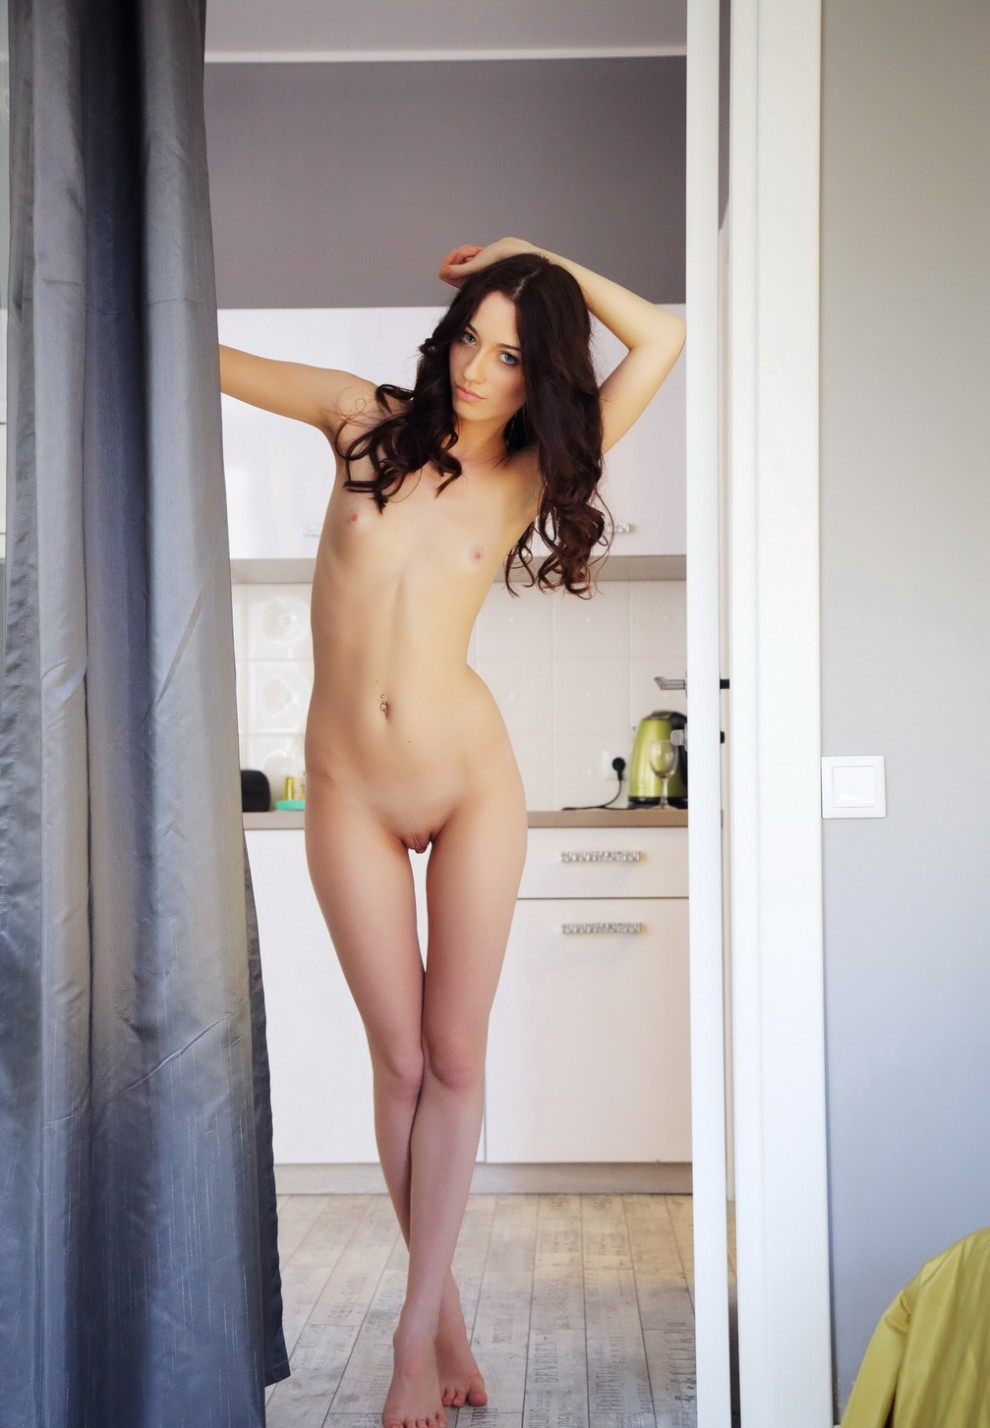 Petite brunette standing in the kitchen